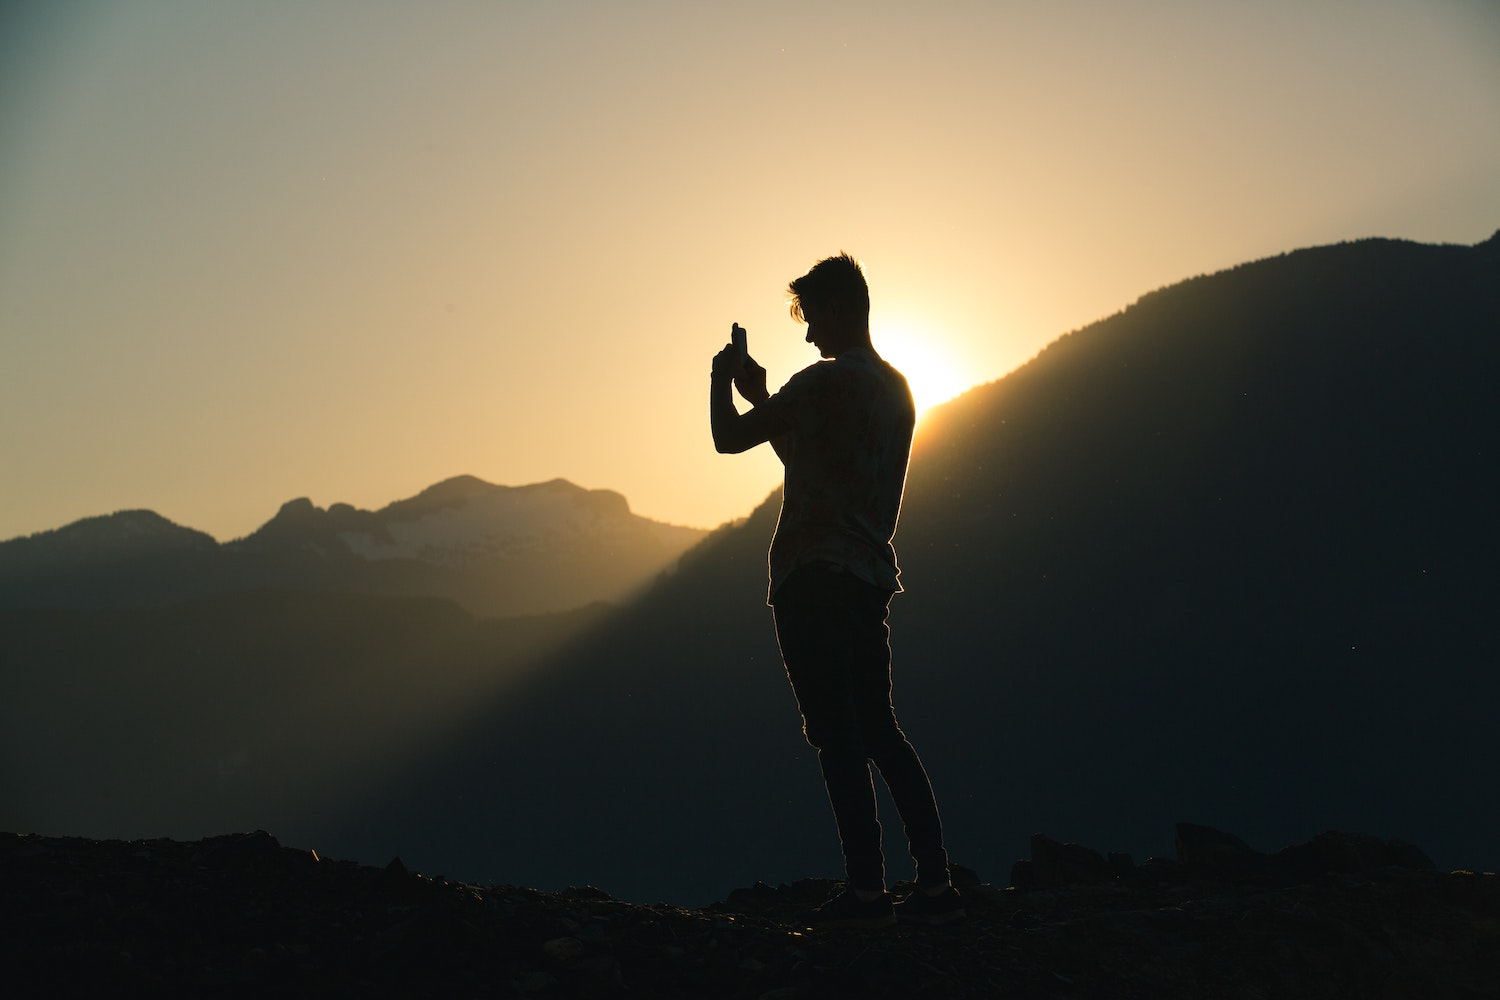 man on mountain taking a photo during golden hour